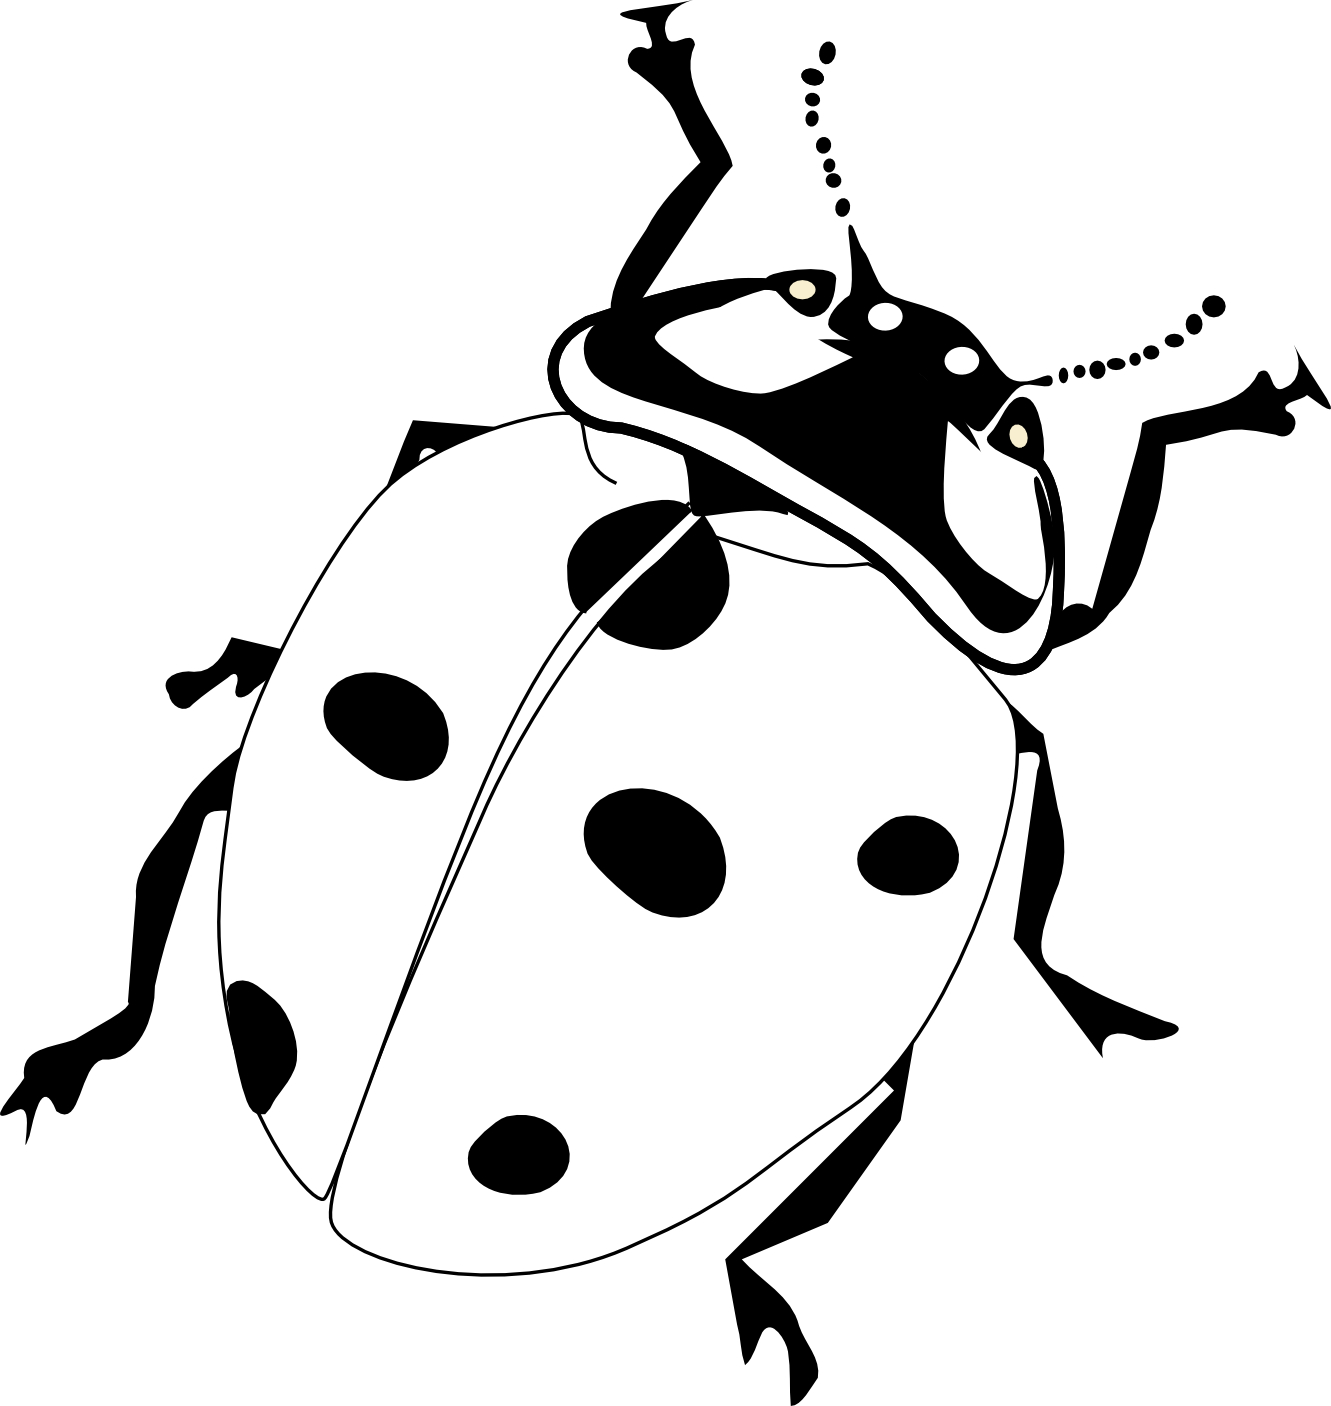 Lady Beetle clipart black and white Google ladybird realistic drawing realistic